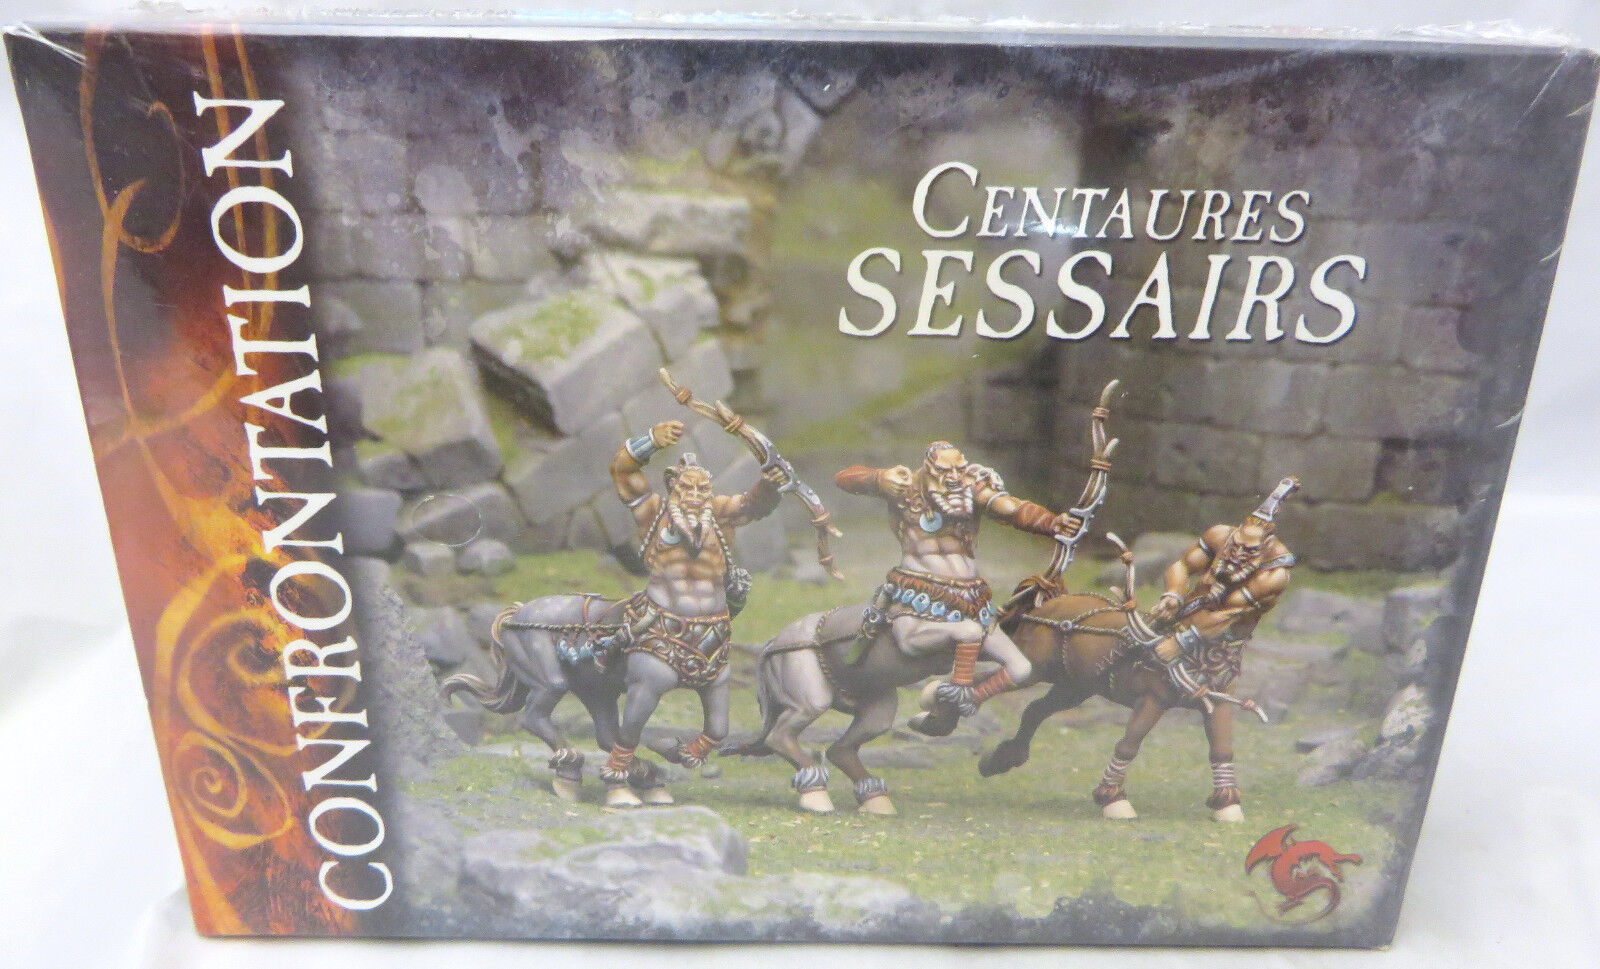 CONFRONTATION - SESSAIRS KELTS - NIB in shrink RARE centaurs oop metal